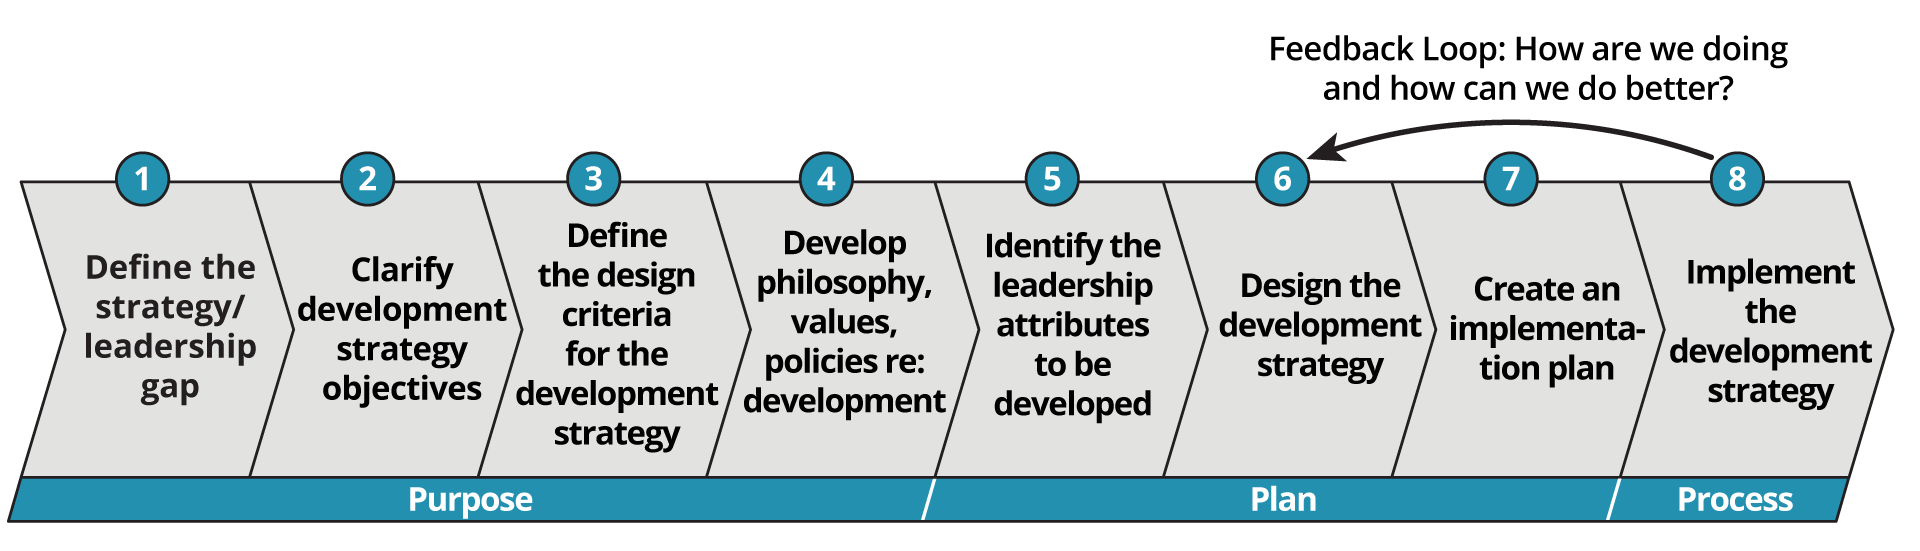 Leadership Roadmap